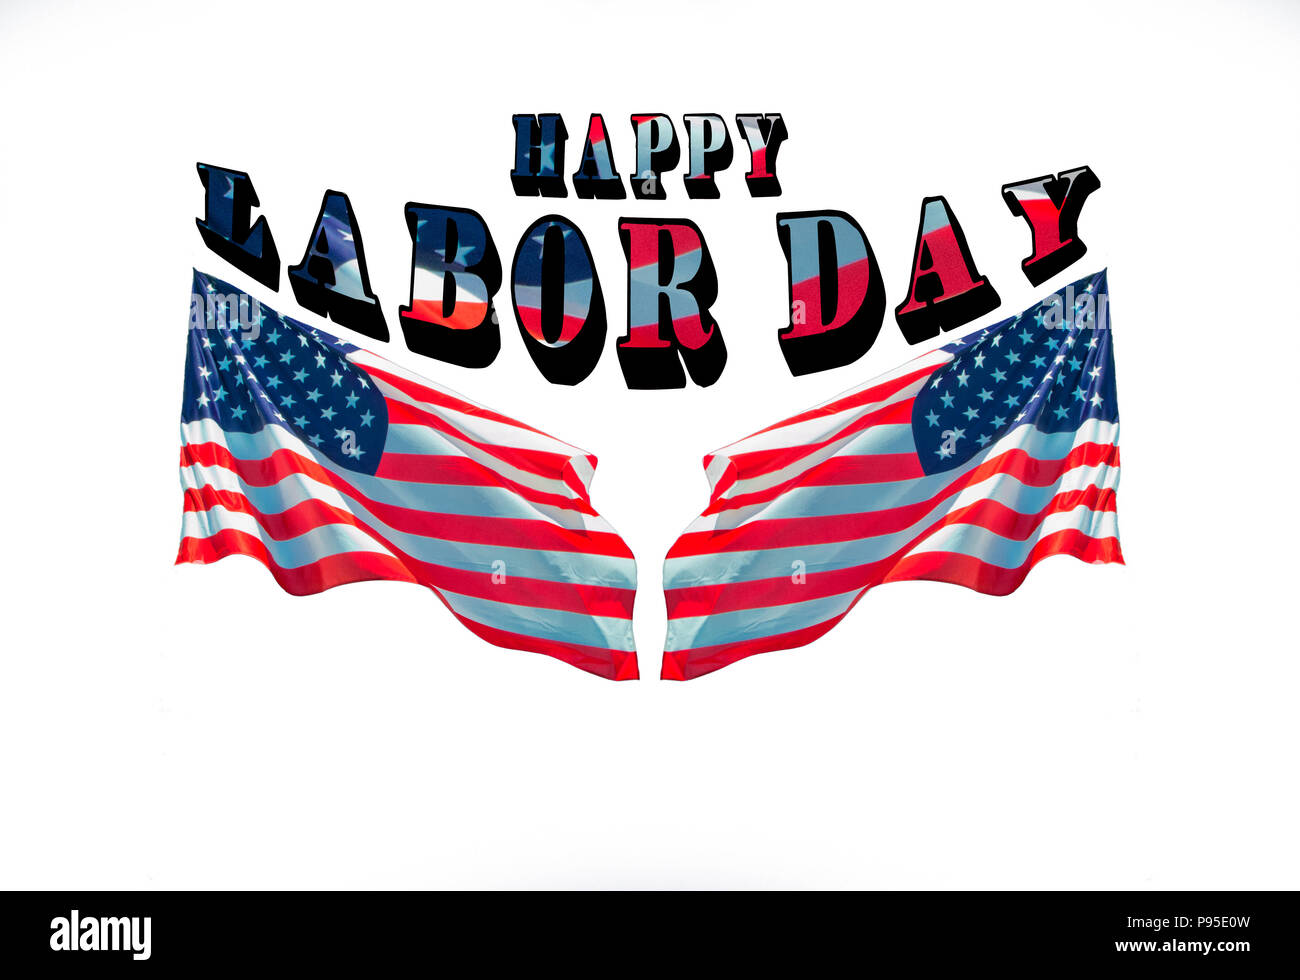 Happy Labor Day With Two American Flags Greeting Cards For National